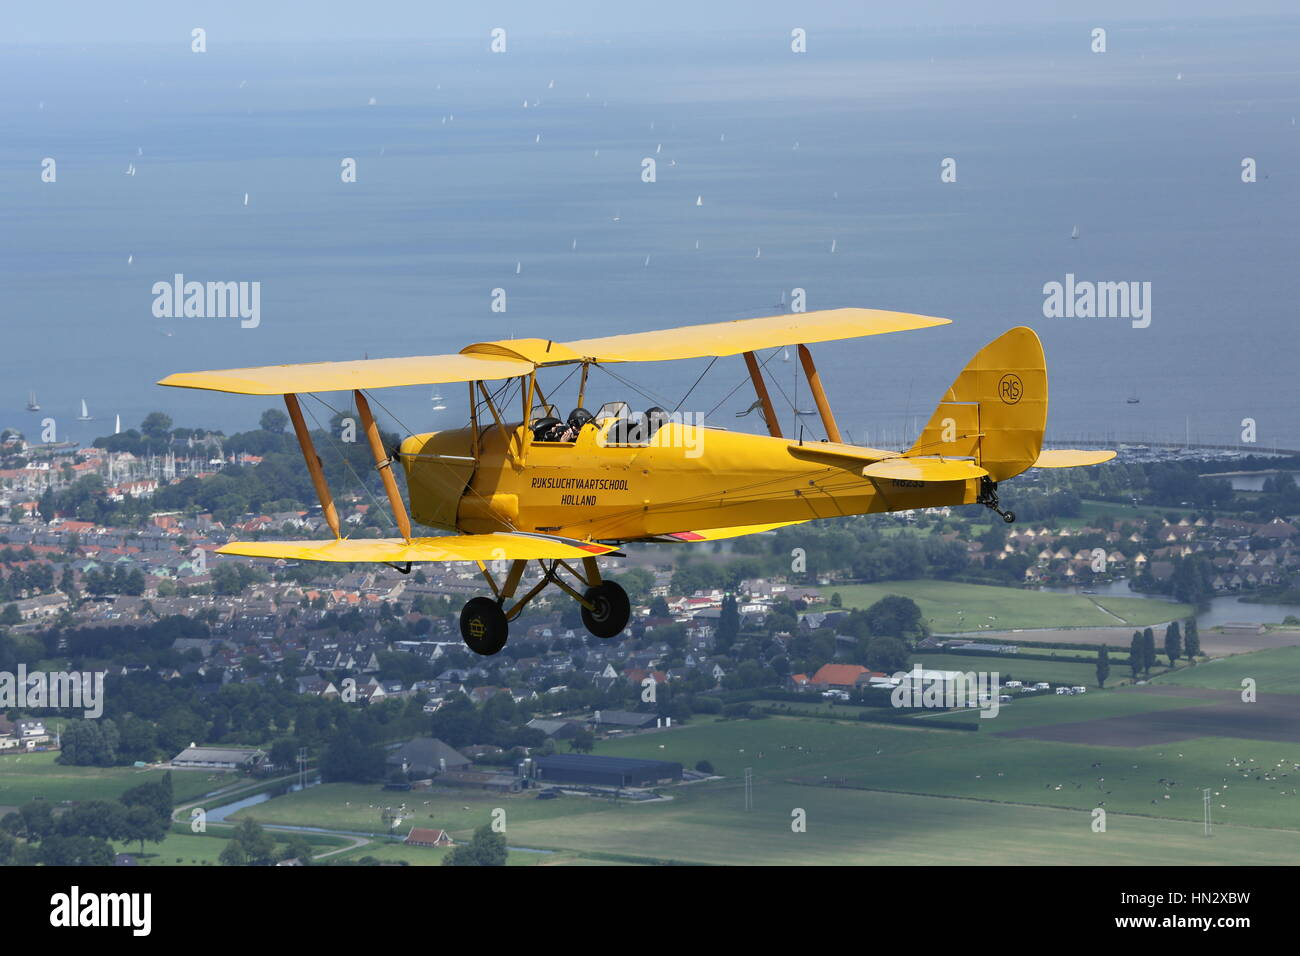 An air to air photo of a vintage Tiger Moth bi-plane - Stock Image